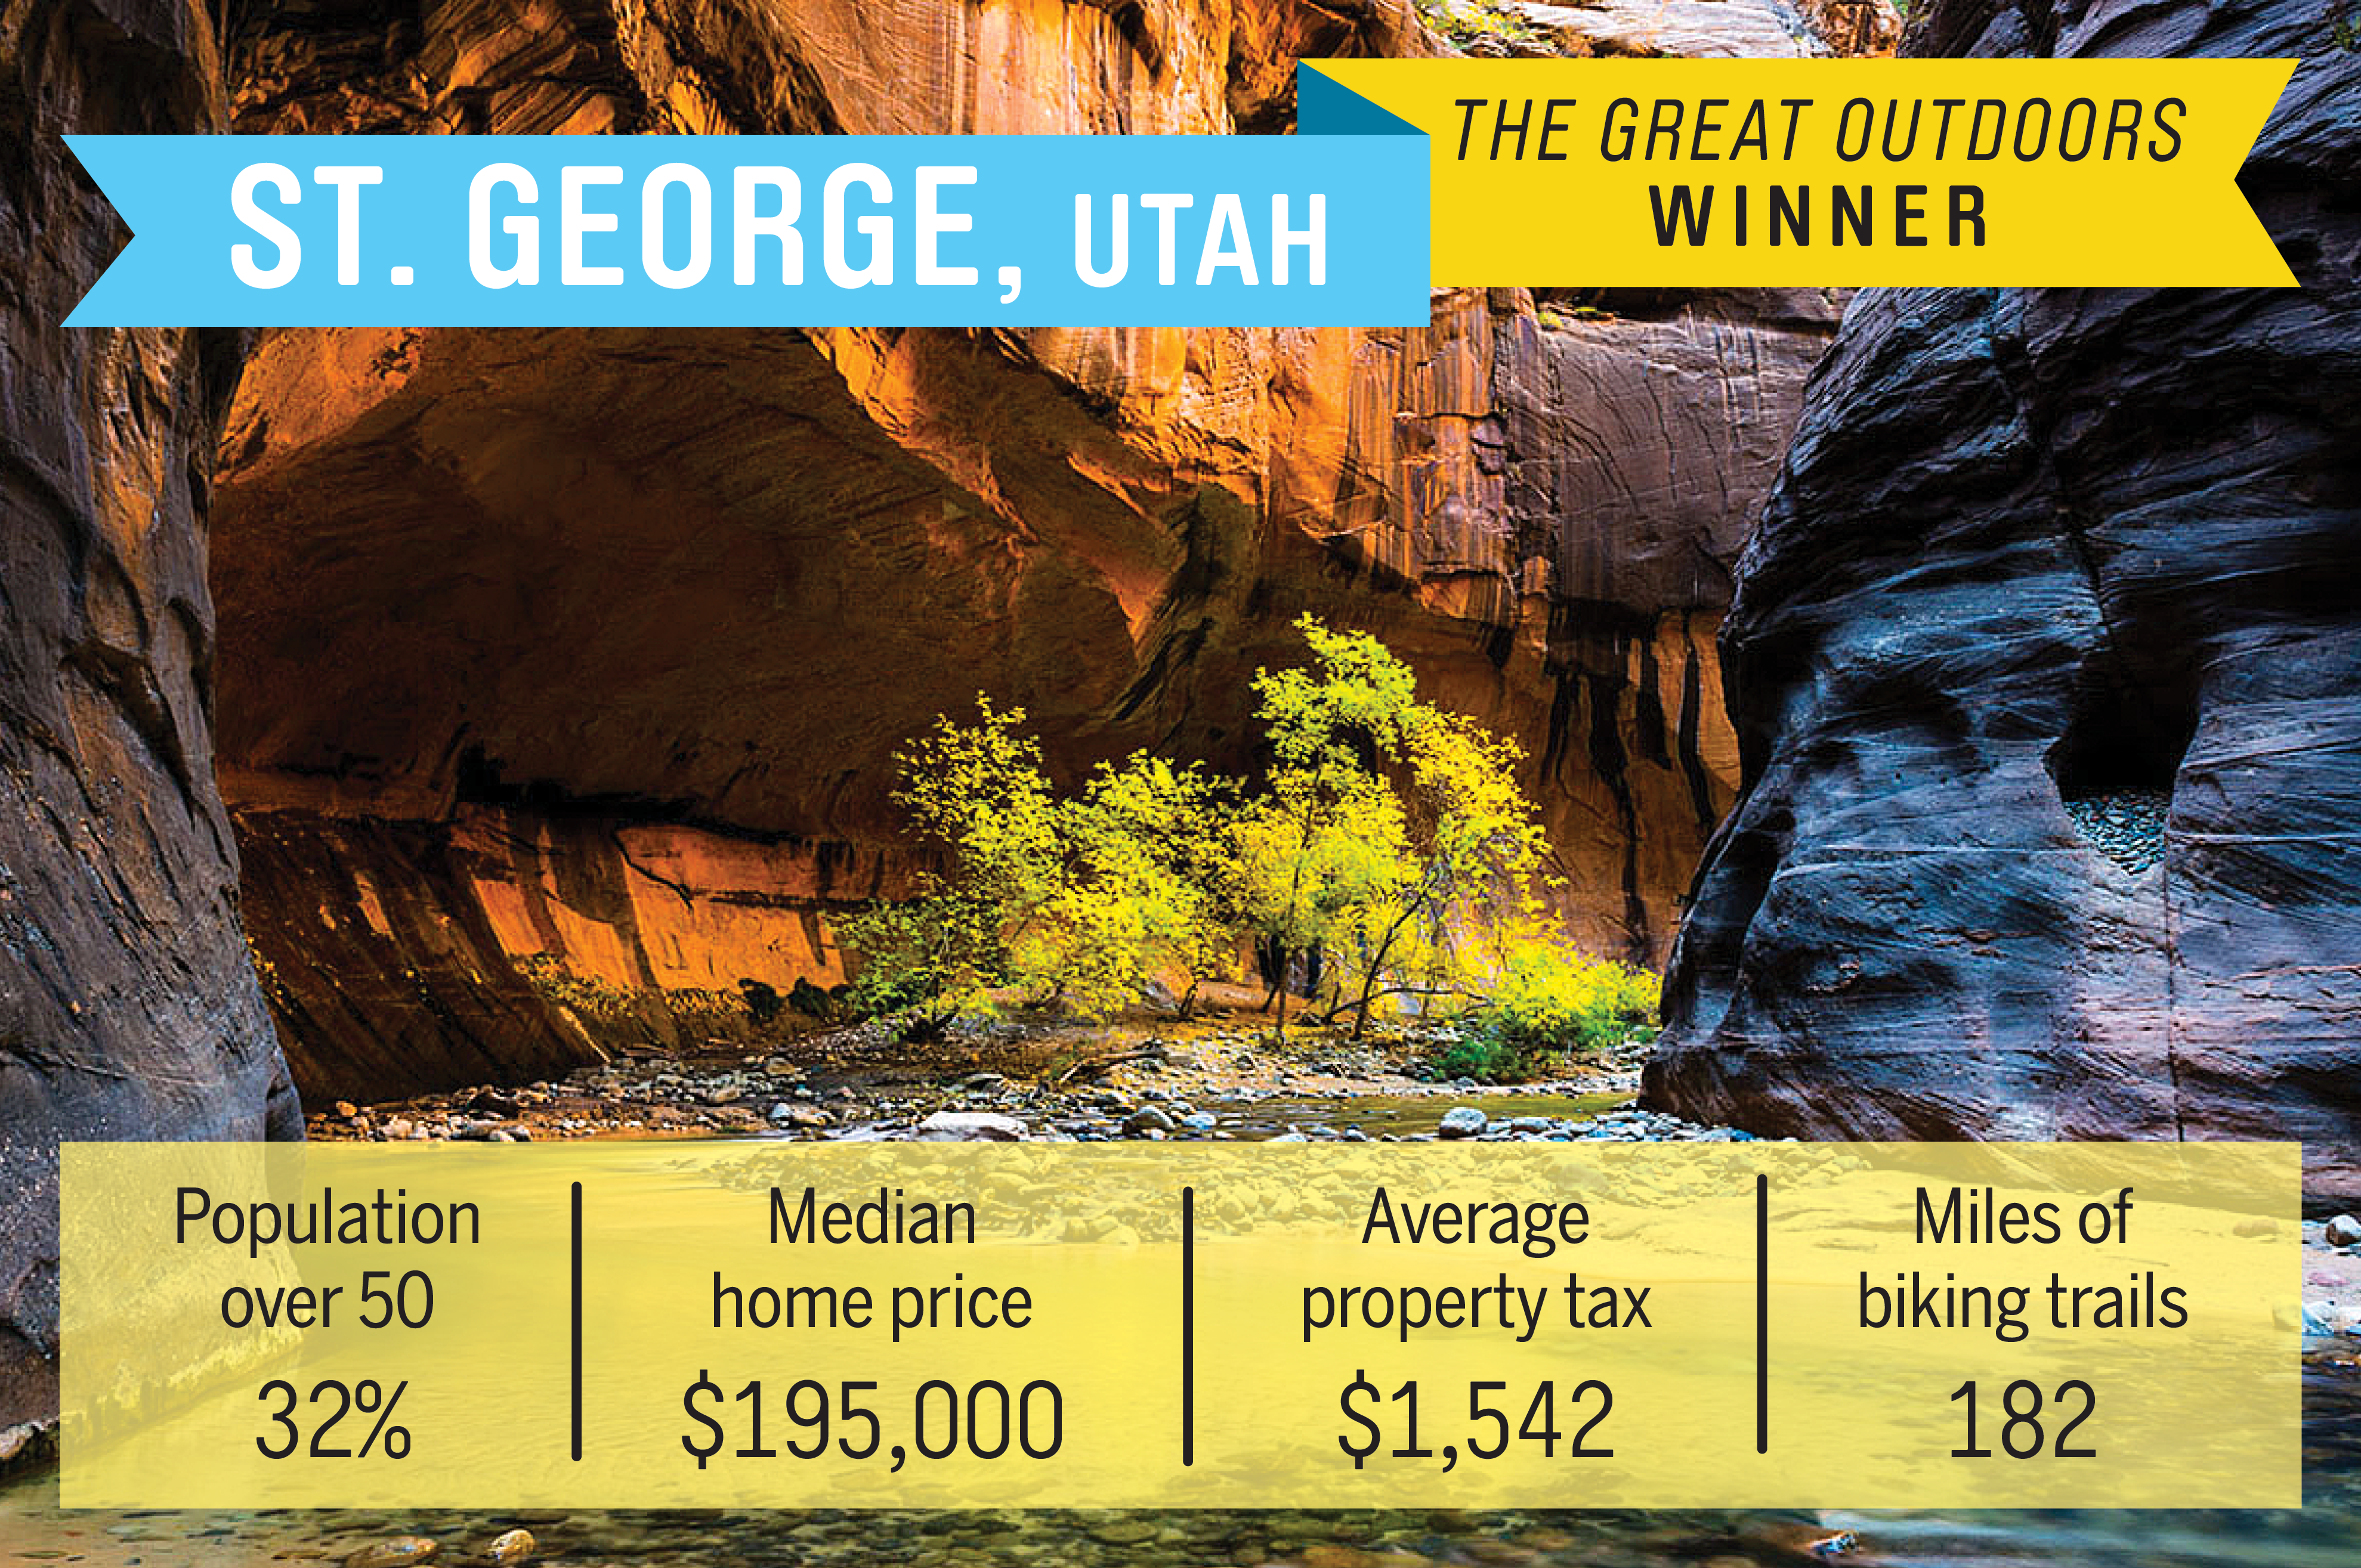 This southwestern Utah town features hundreds of miles of trails for biking and hiking, and Mt. Zion National Park is a few miles away. St. George also remains affordable compared to more well-known retirement destinations such as Palm Springs and Tucson. The median home price here is $195,000.